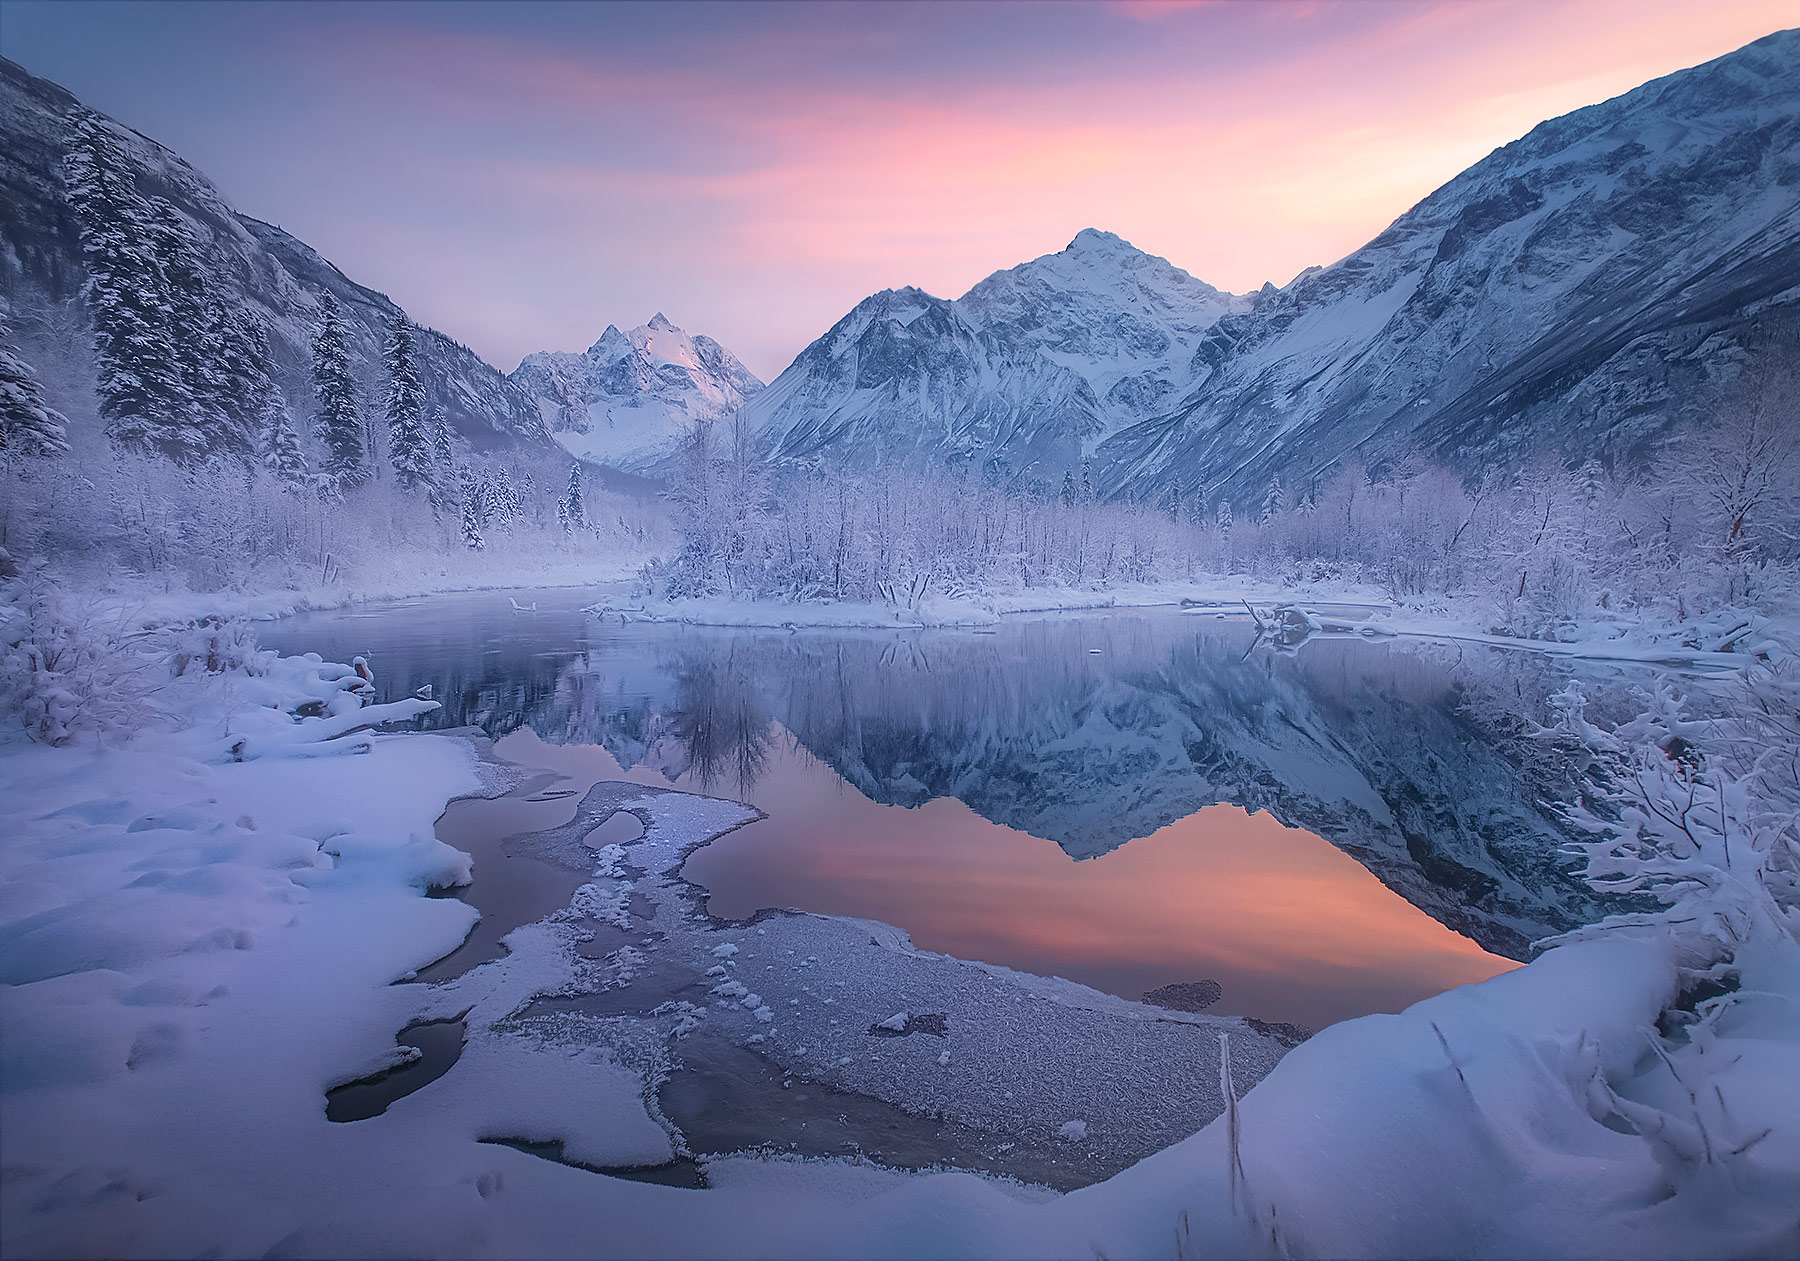 Peaks in Alaska catch the soft winter's light reflected in warm groundwater pools.